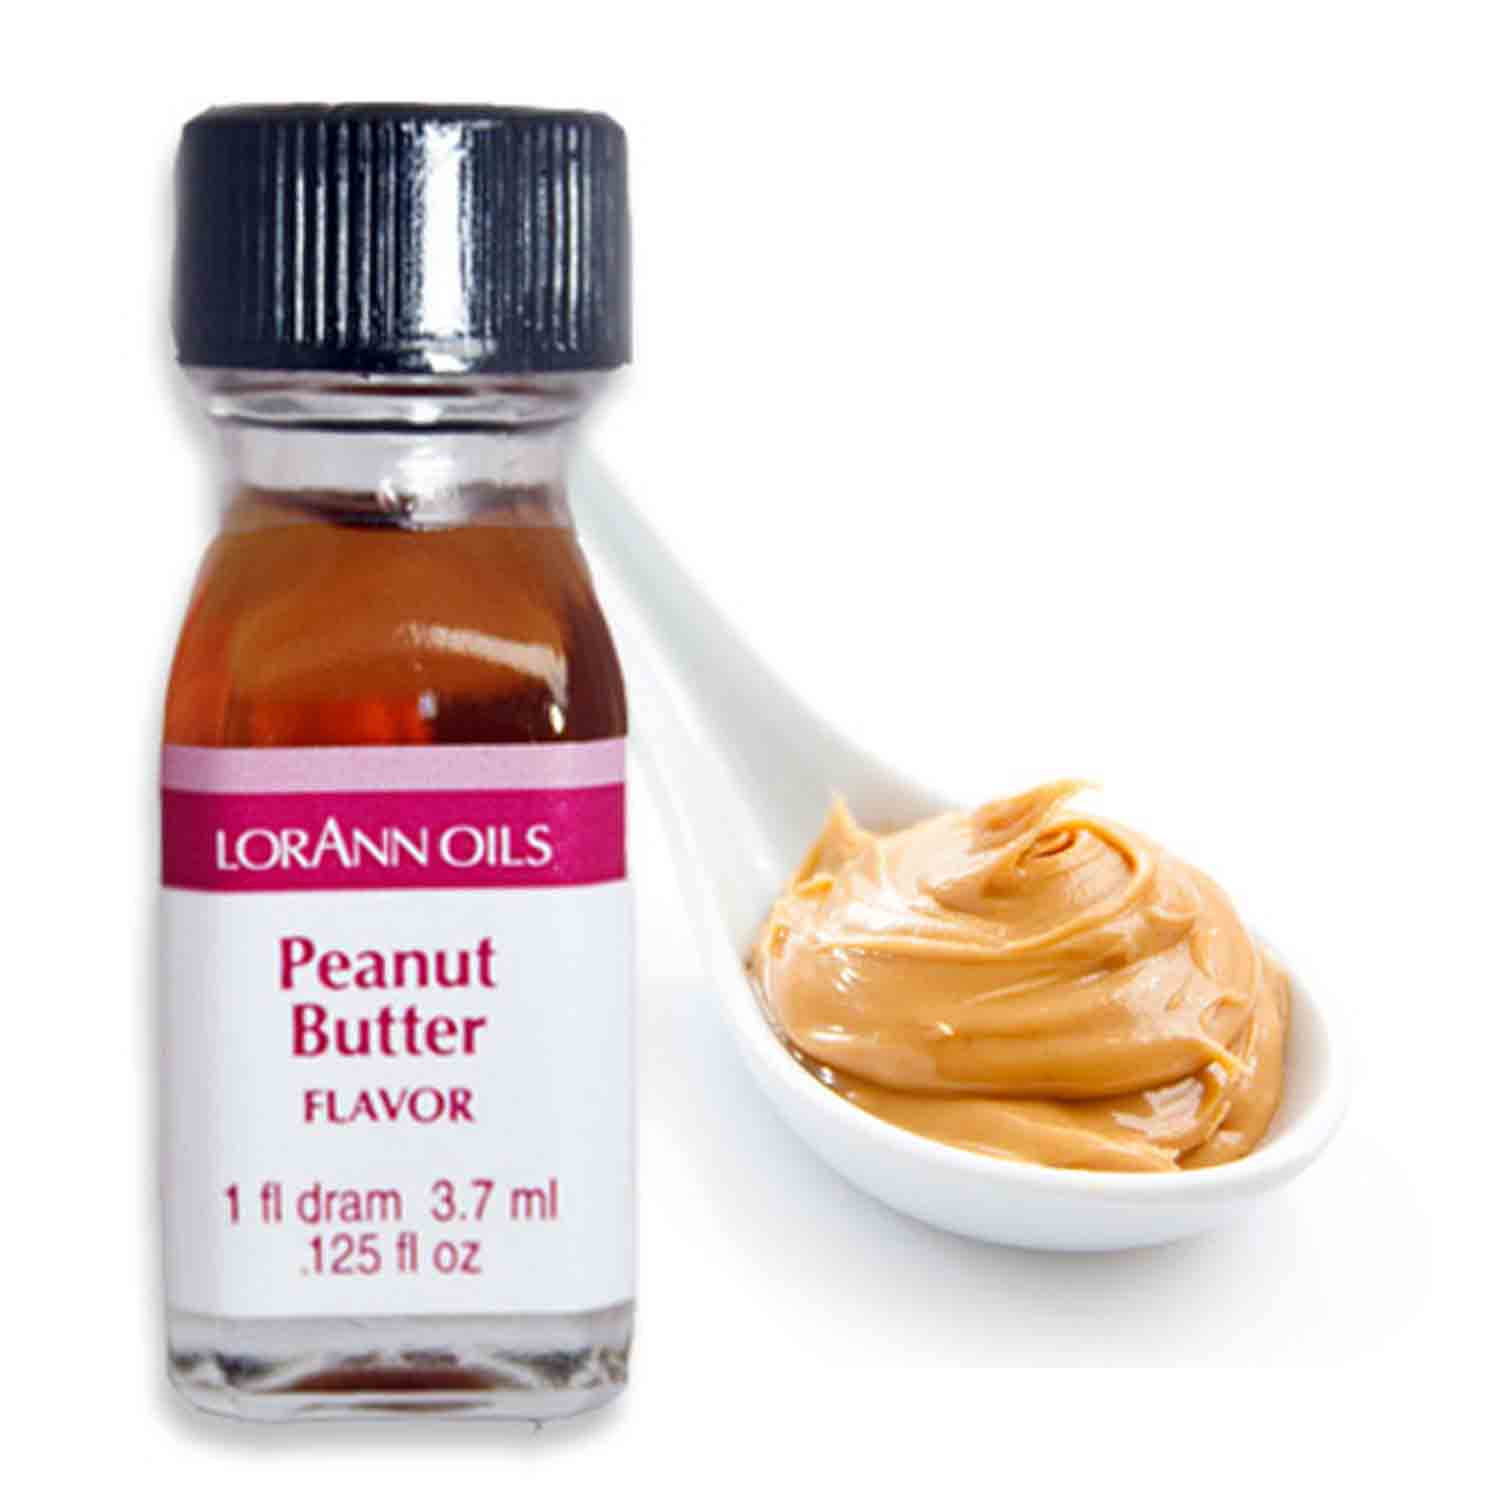 Peanut Butter LorAnn Super-Strength Flavor